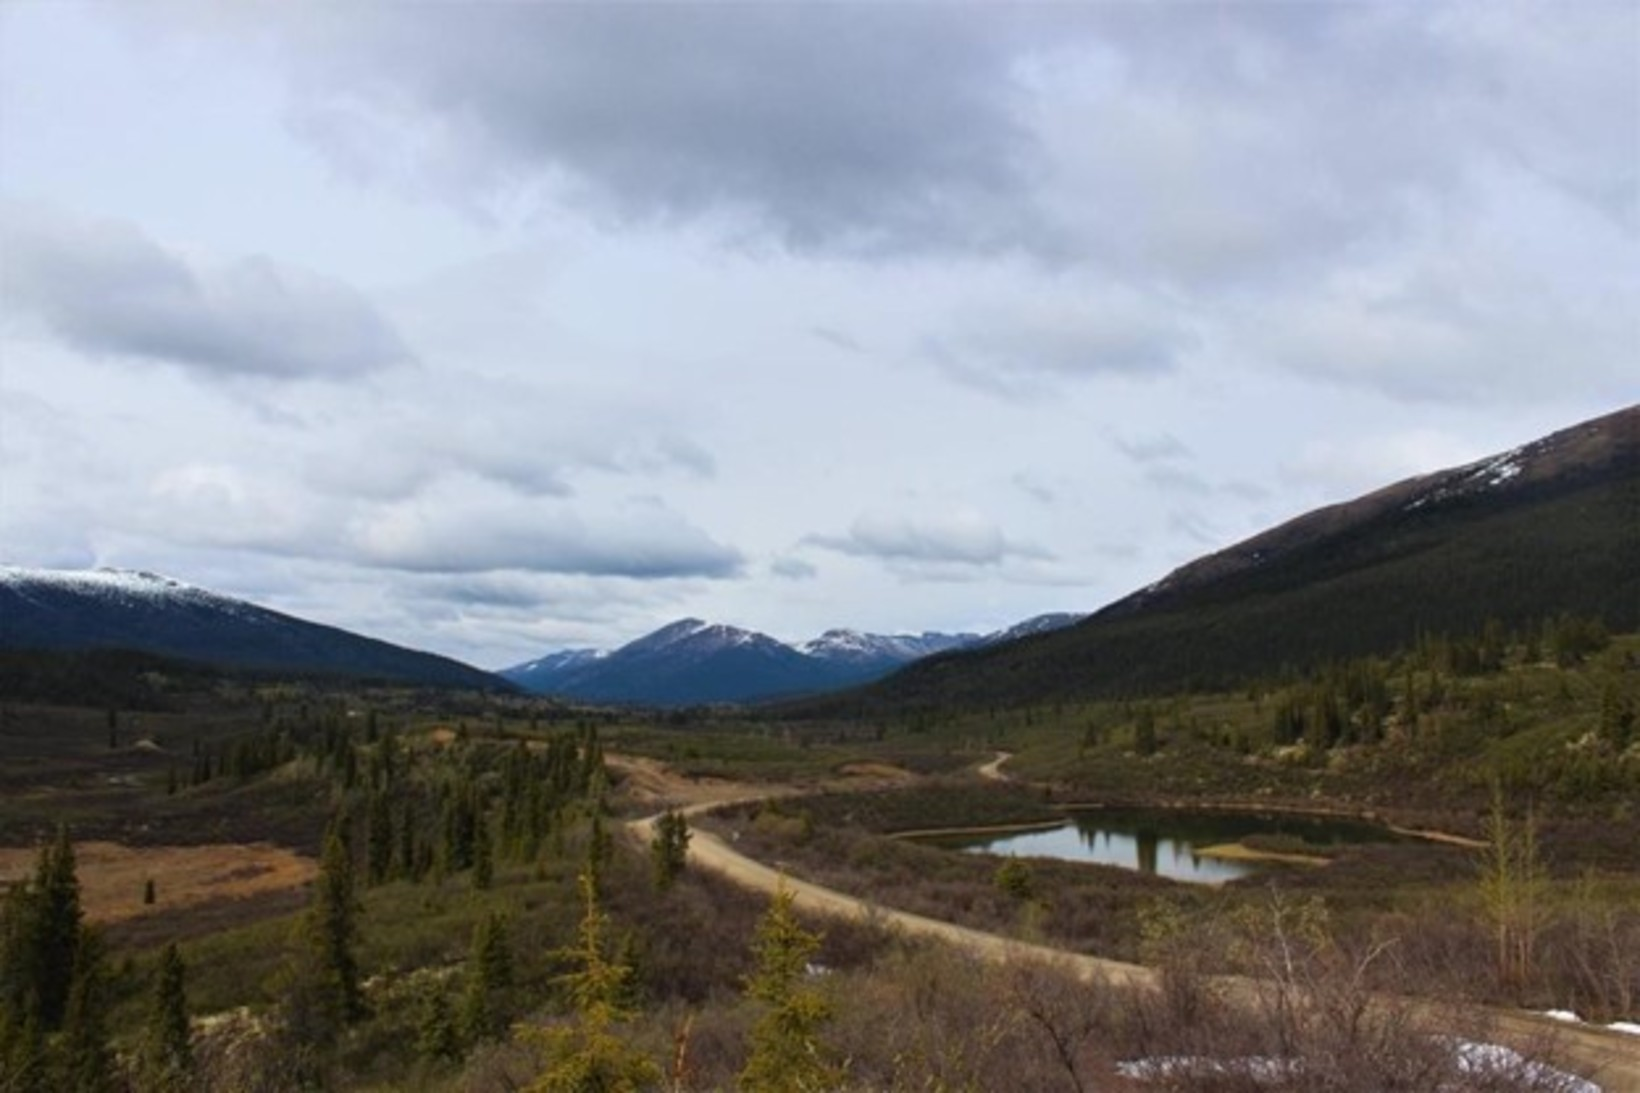 Slow but steady: Driving on the South Canol Road